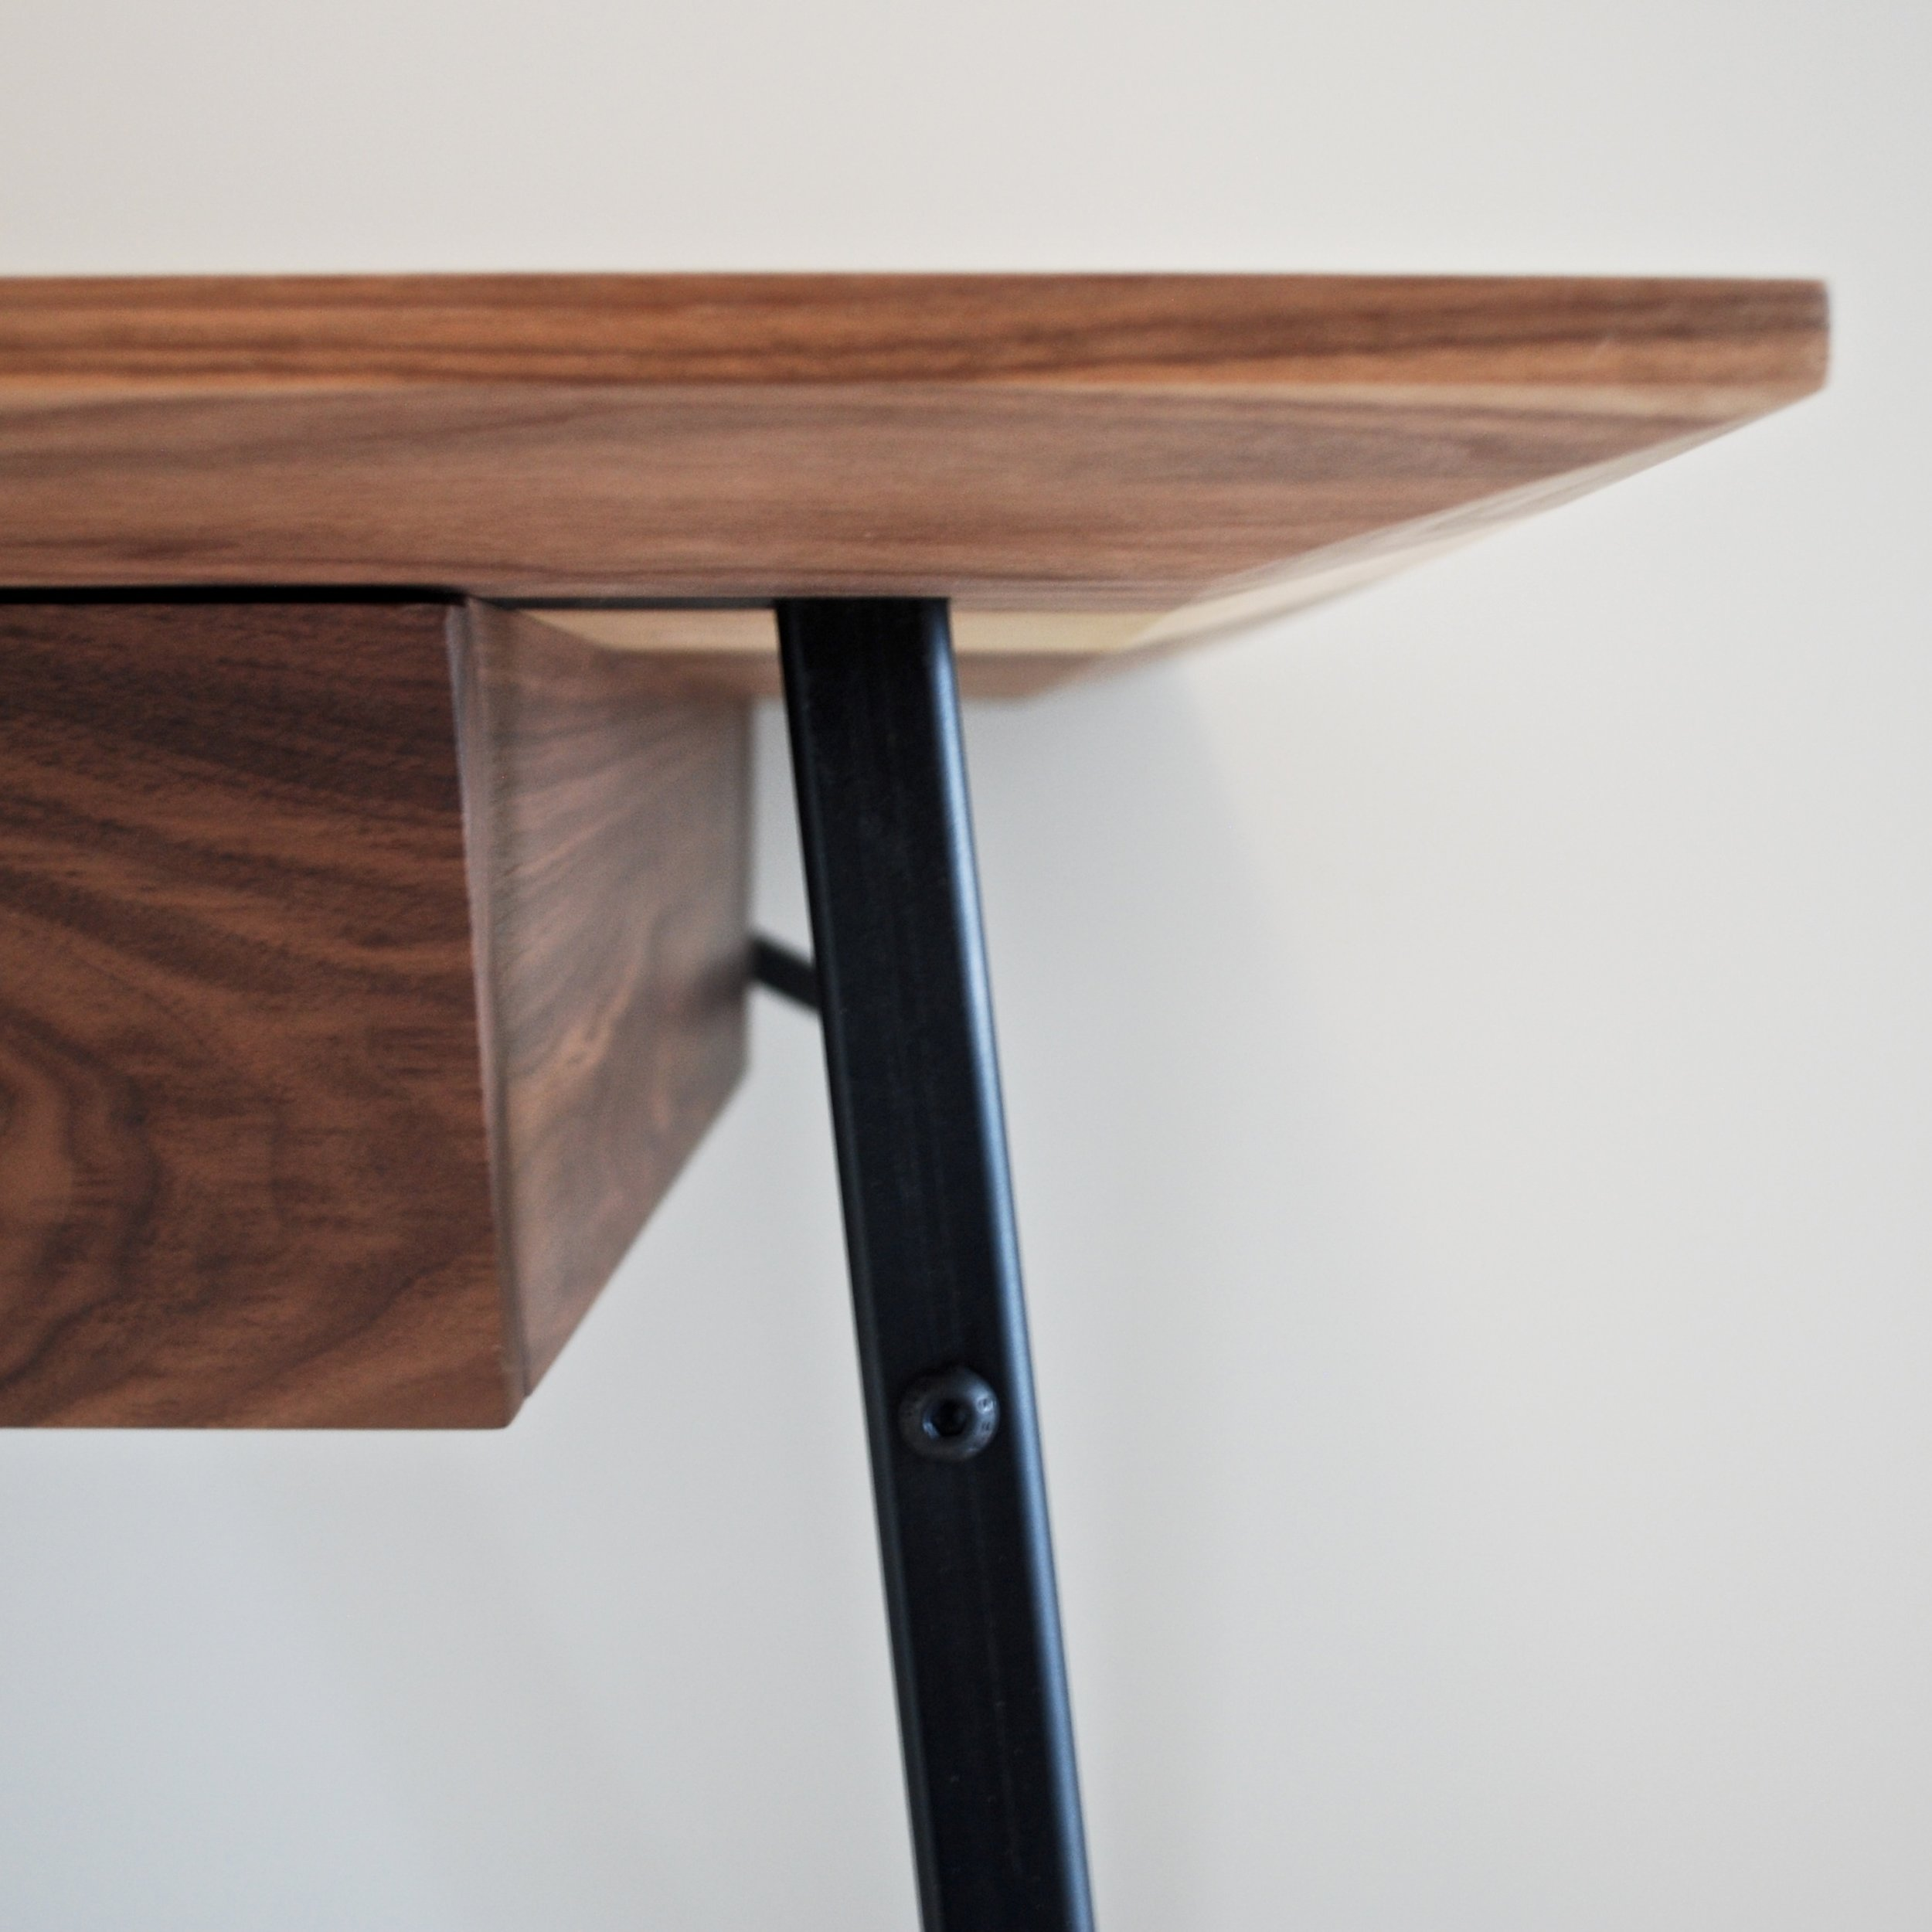 Handmade bespoke Walnut, steel and leather desk